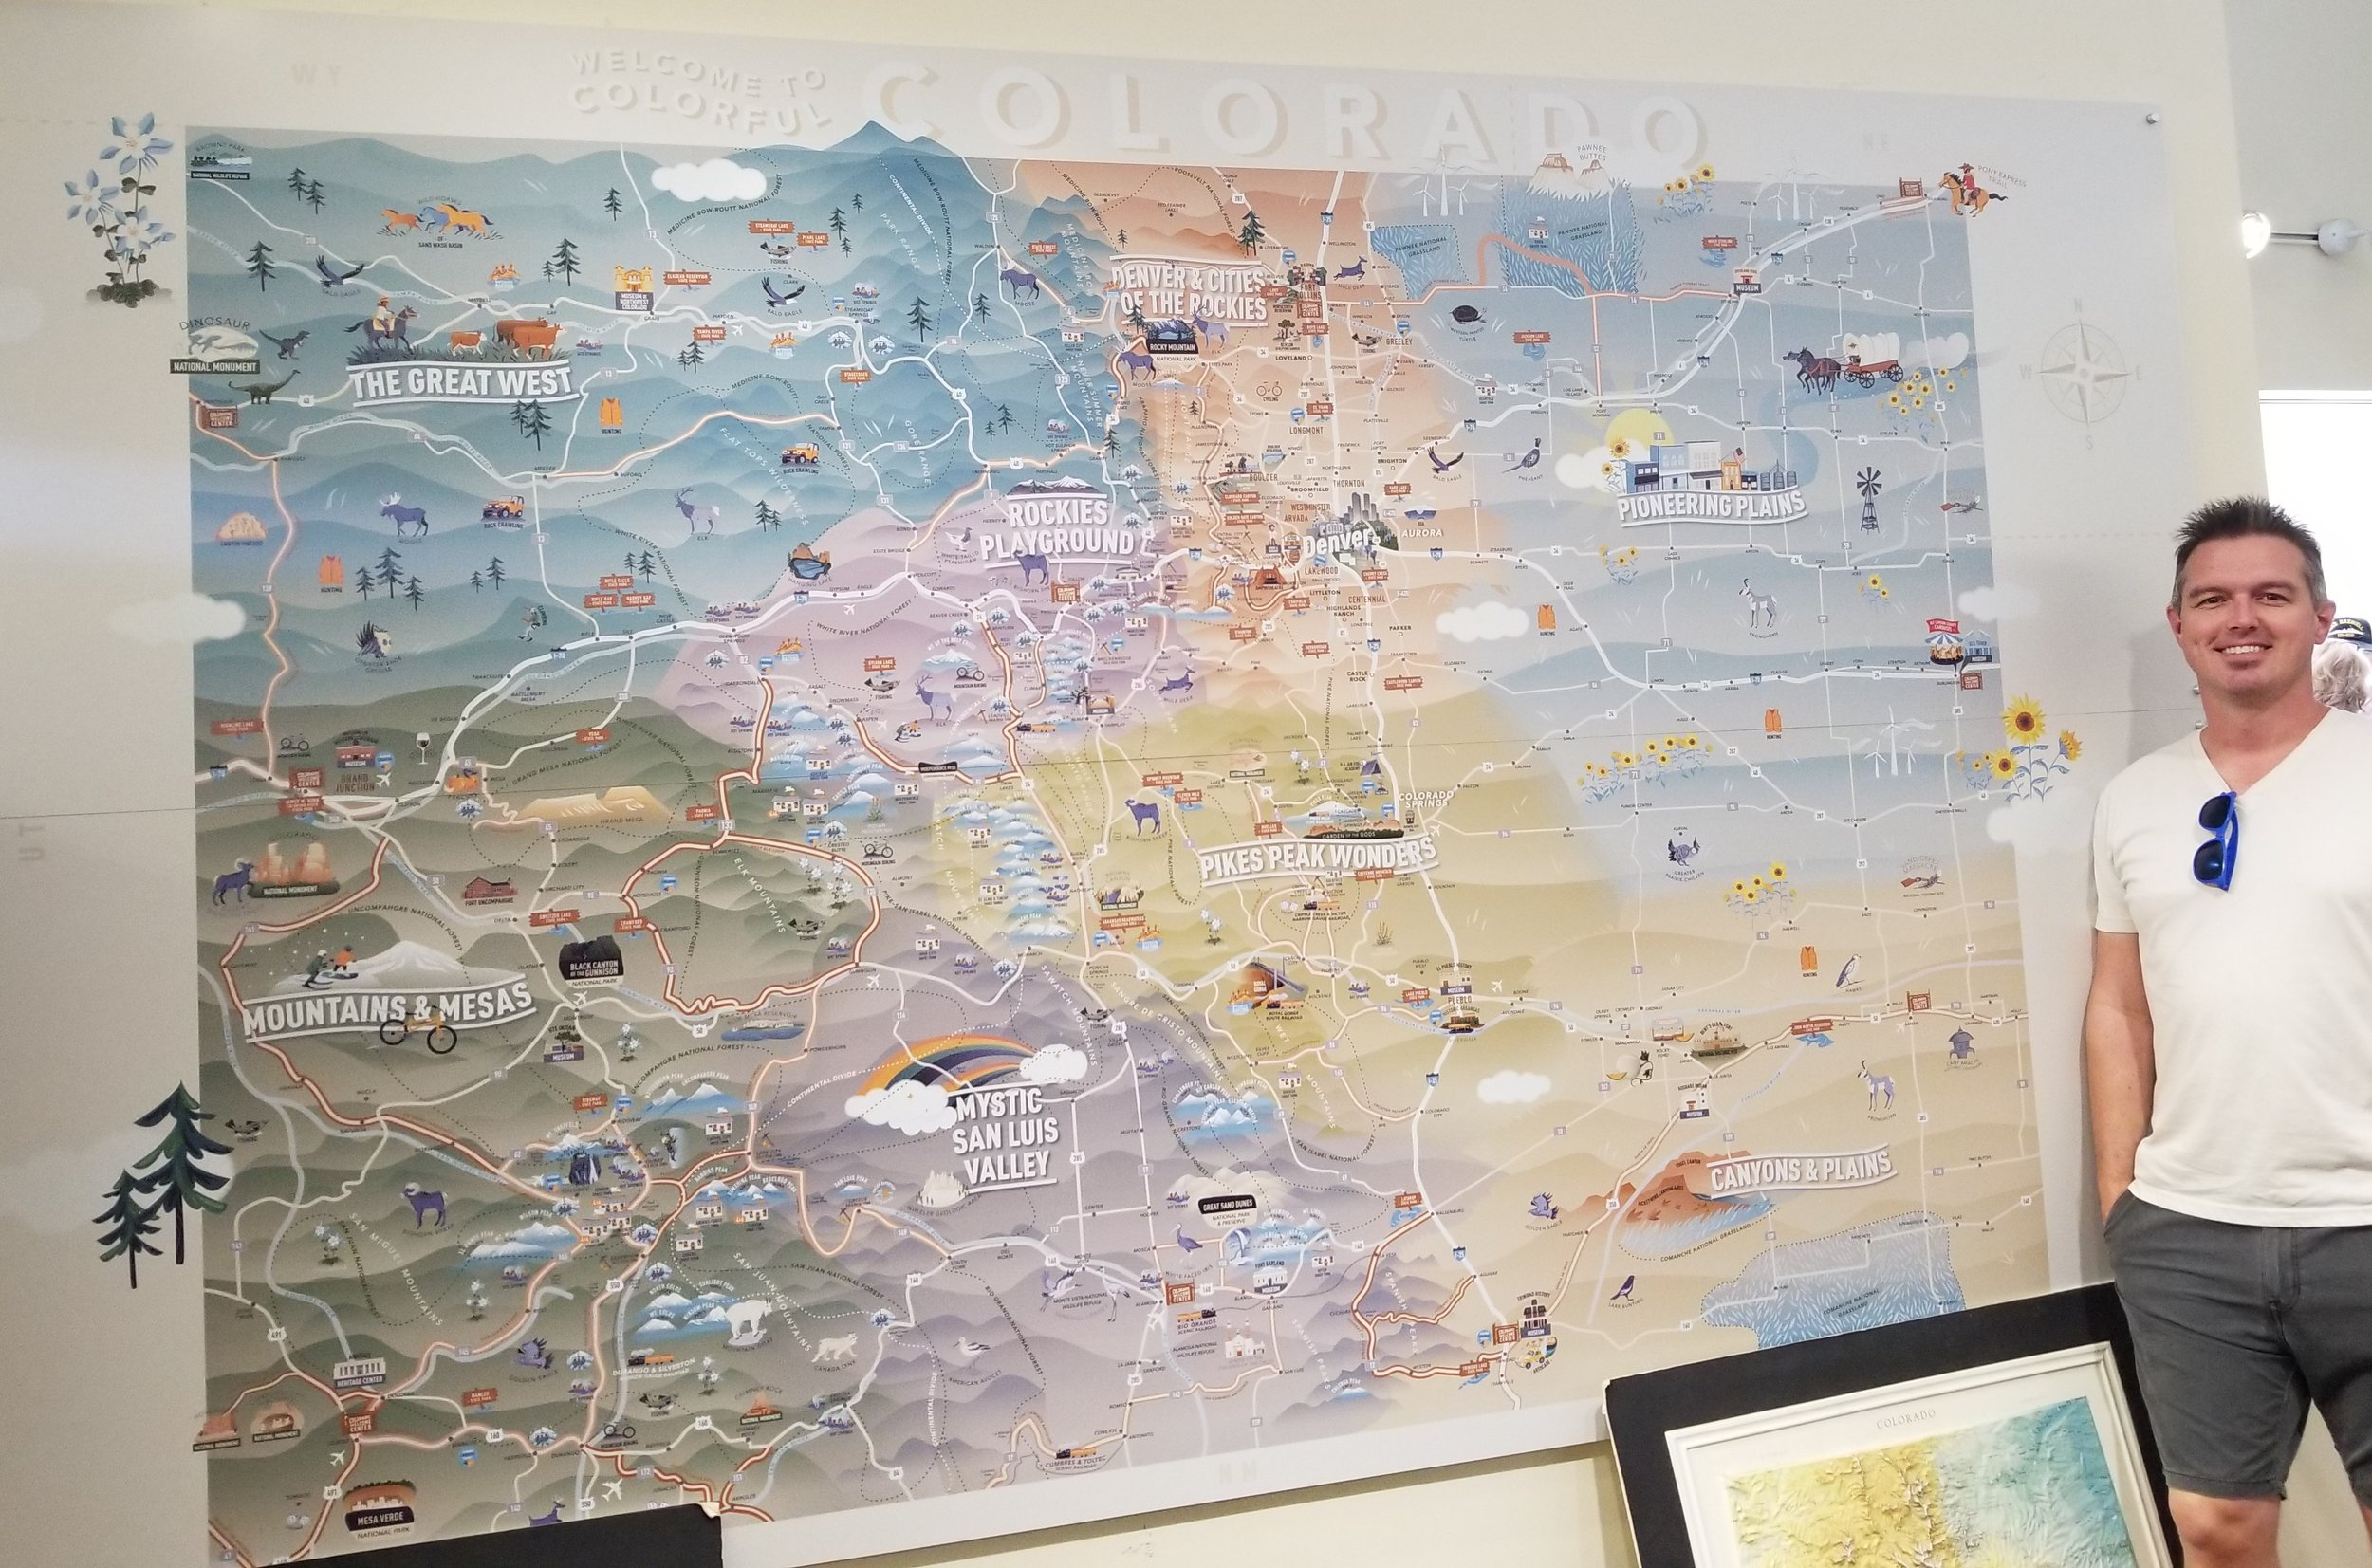 Great map at the Colorado visitor center